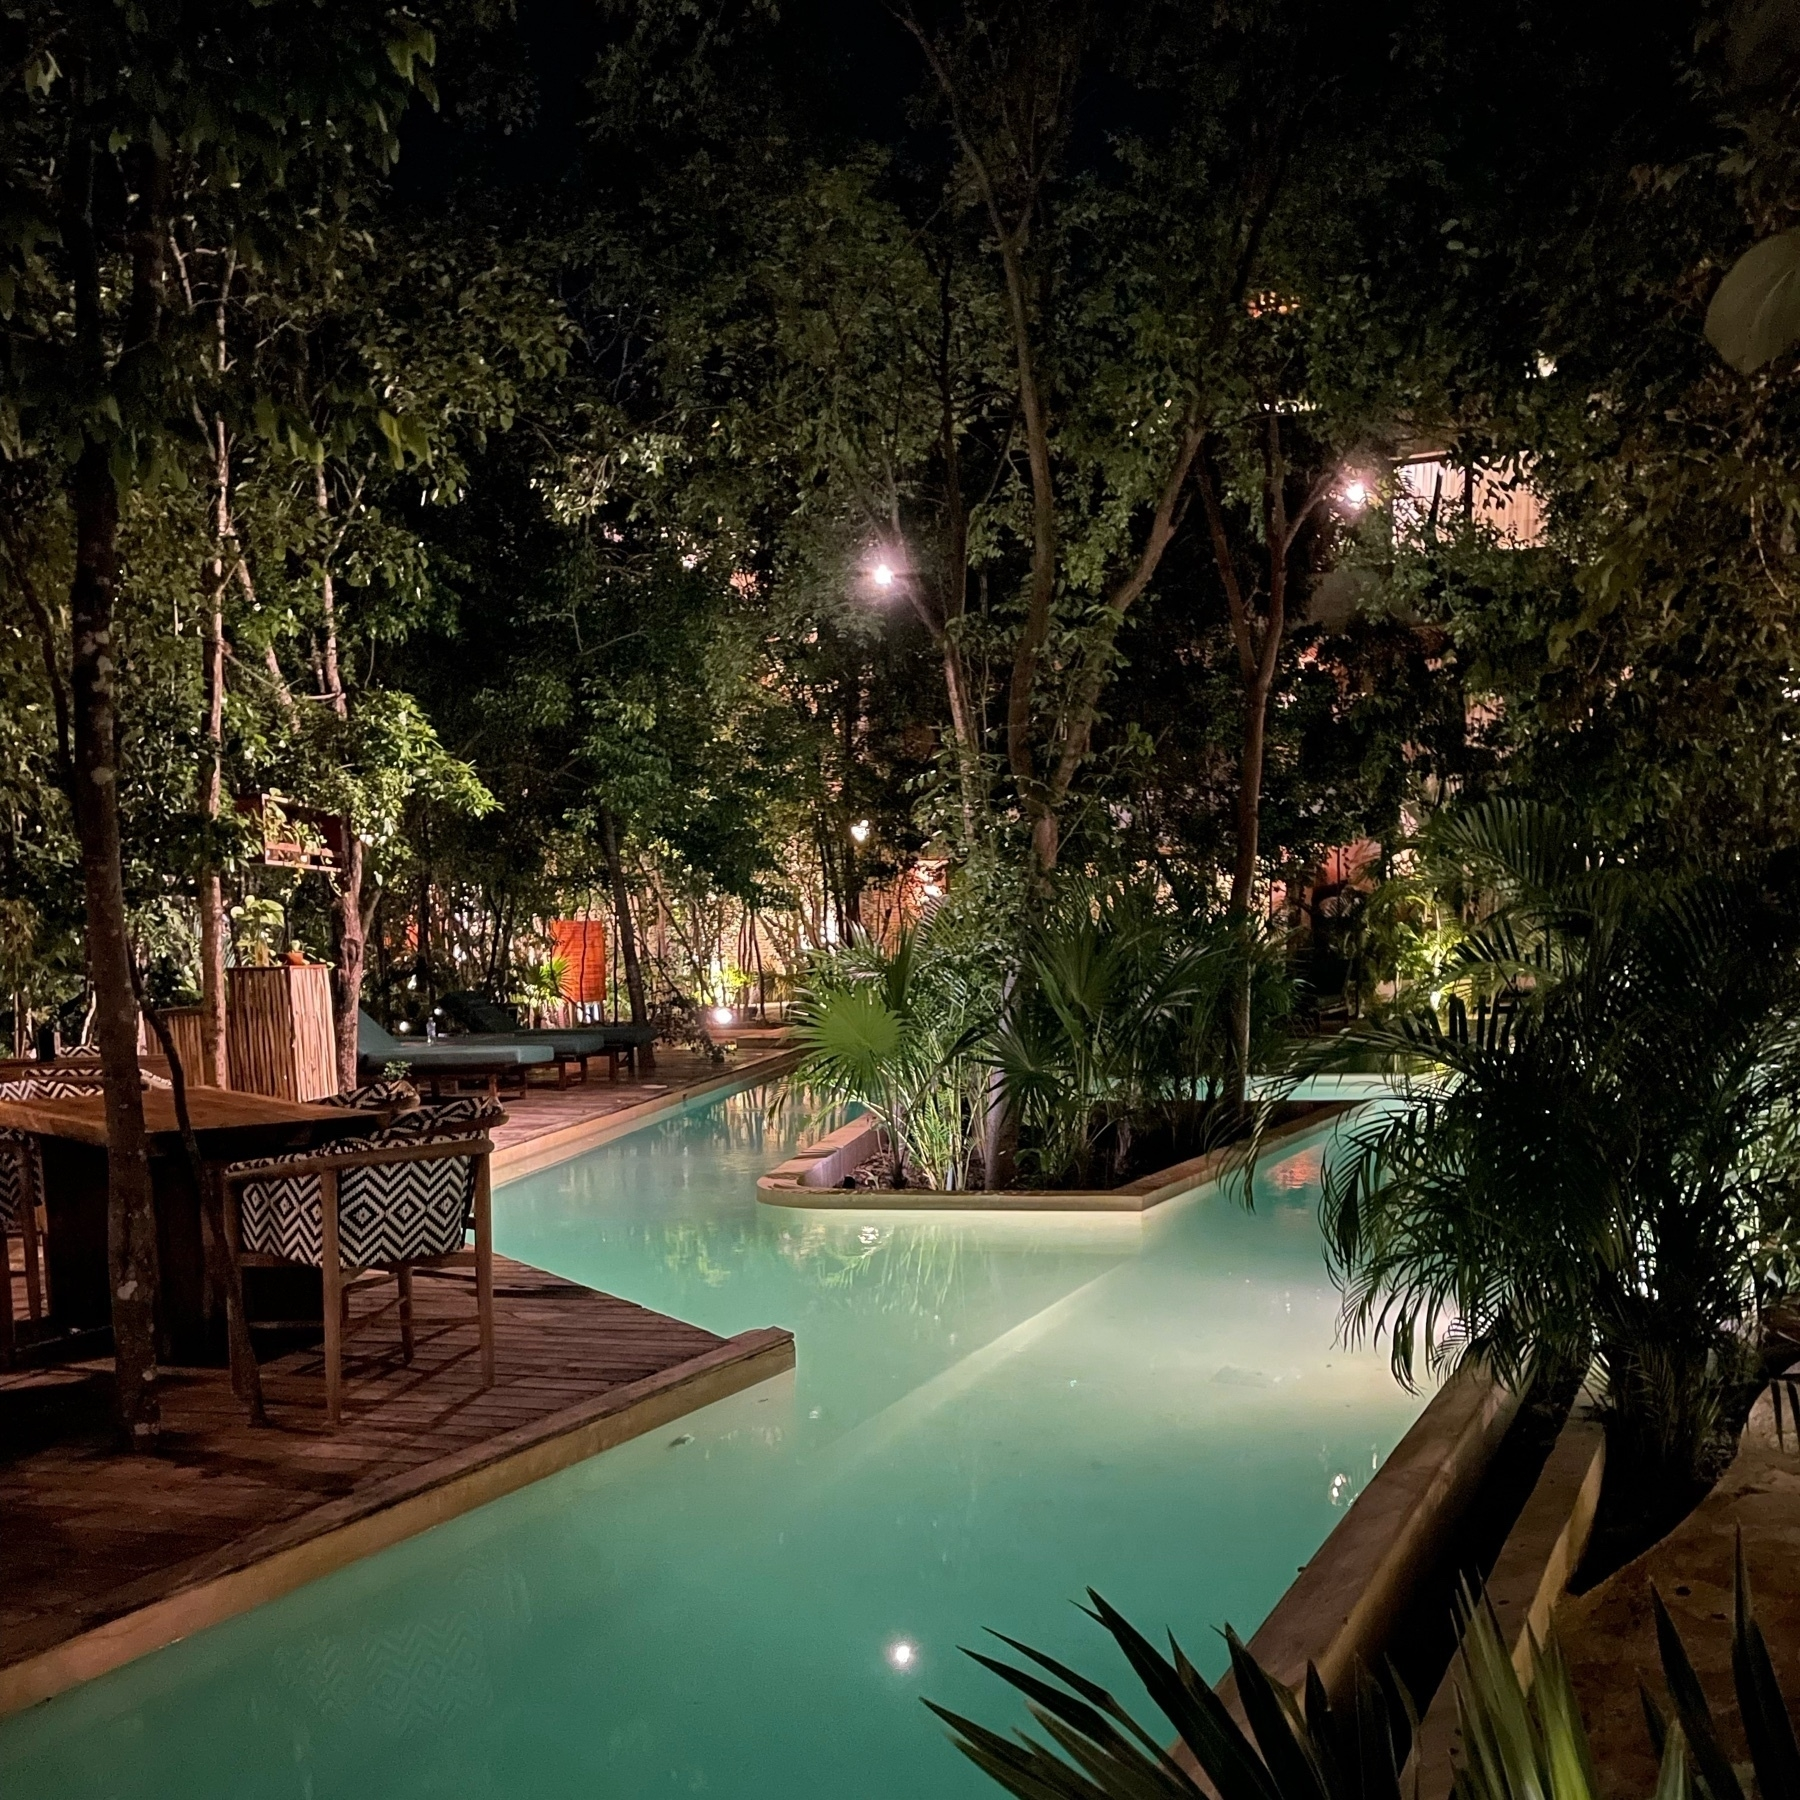 A pool with humid mist at night lit from underneath surrounded by jungle foliage.